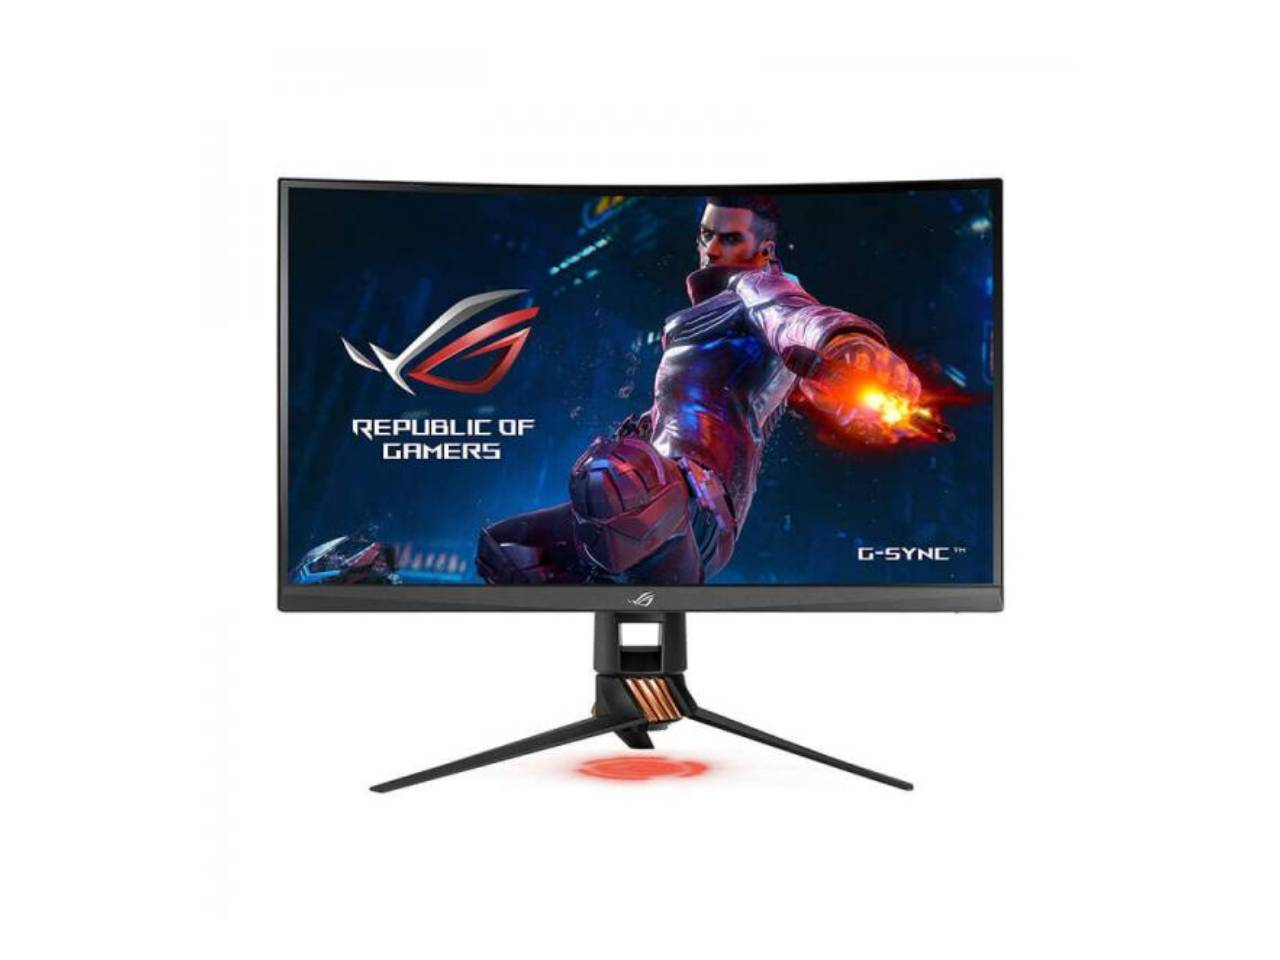 "Asus ROG Swift PG27UQ 27"" Gaming Monitor 4K UHD (3840x2160) 144Hz DP HDMI G-SYNC HDR Aura Sync with Eye Care-computerspace"